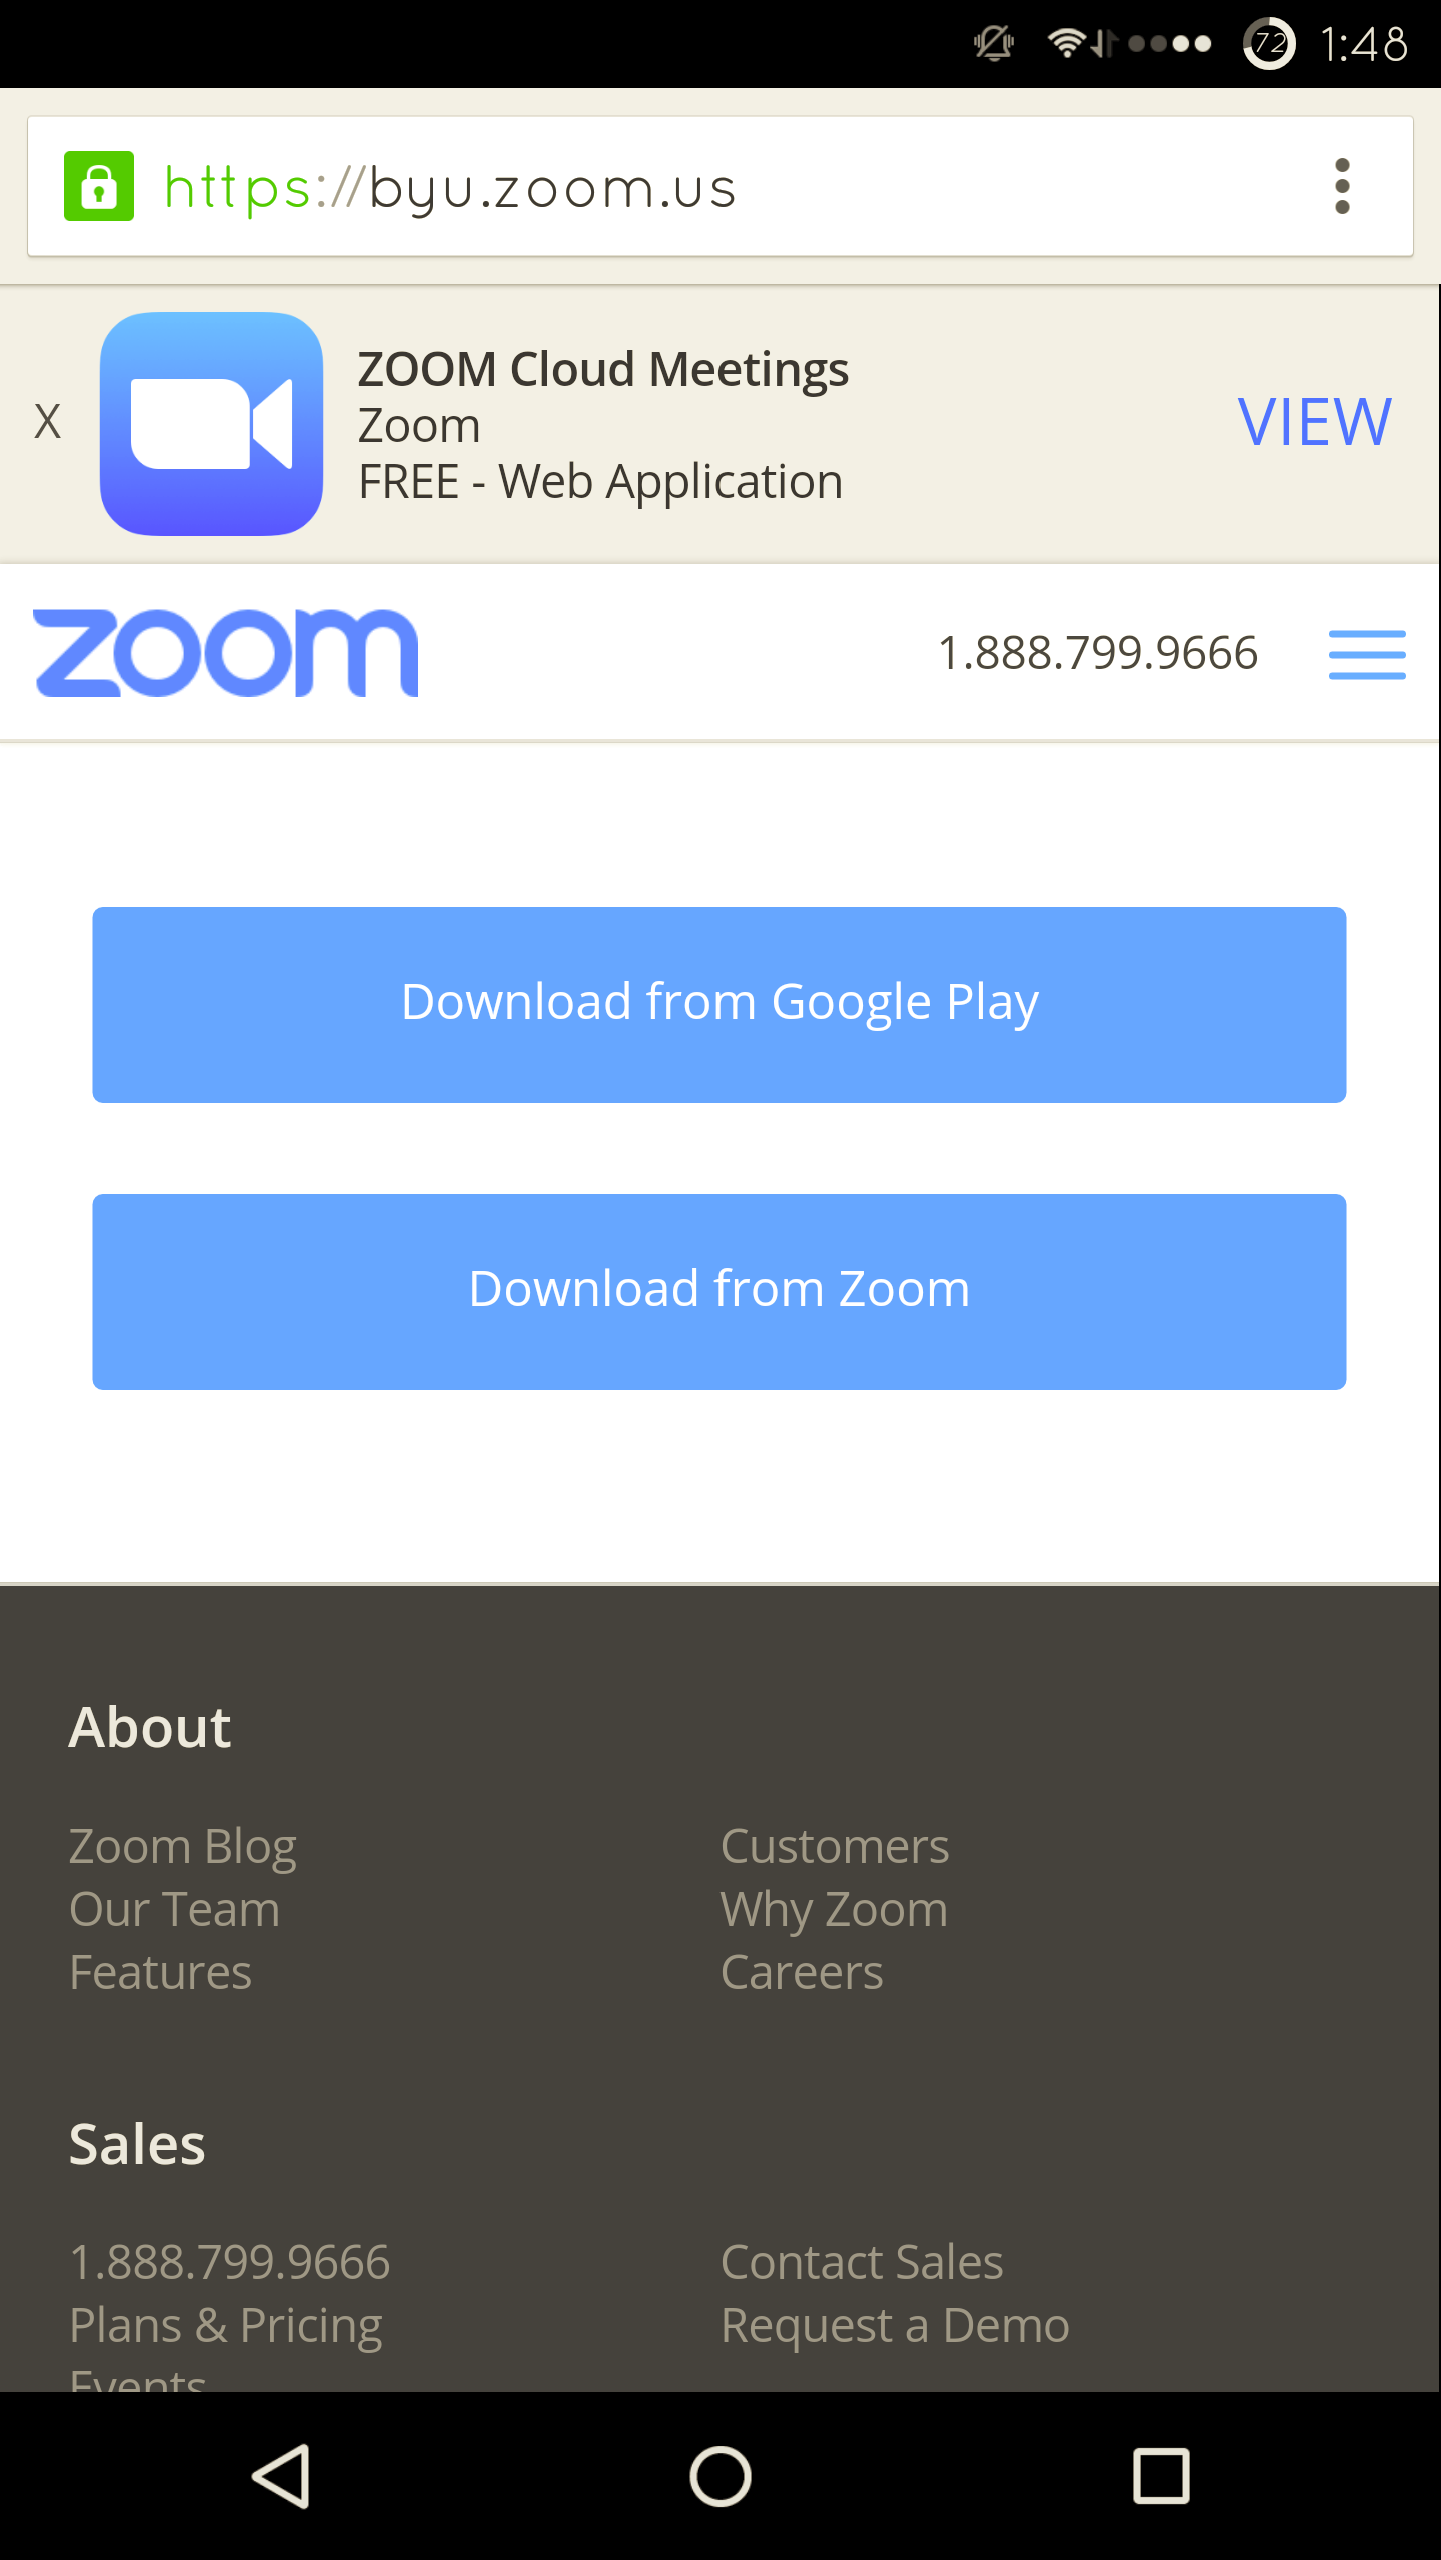 Knowledge - Zoom for Android: Getting Started